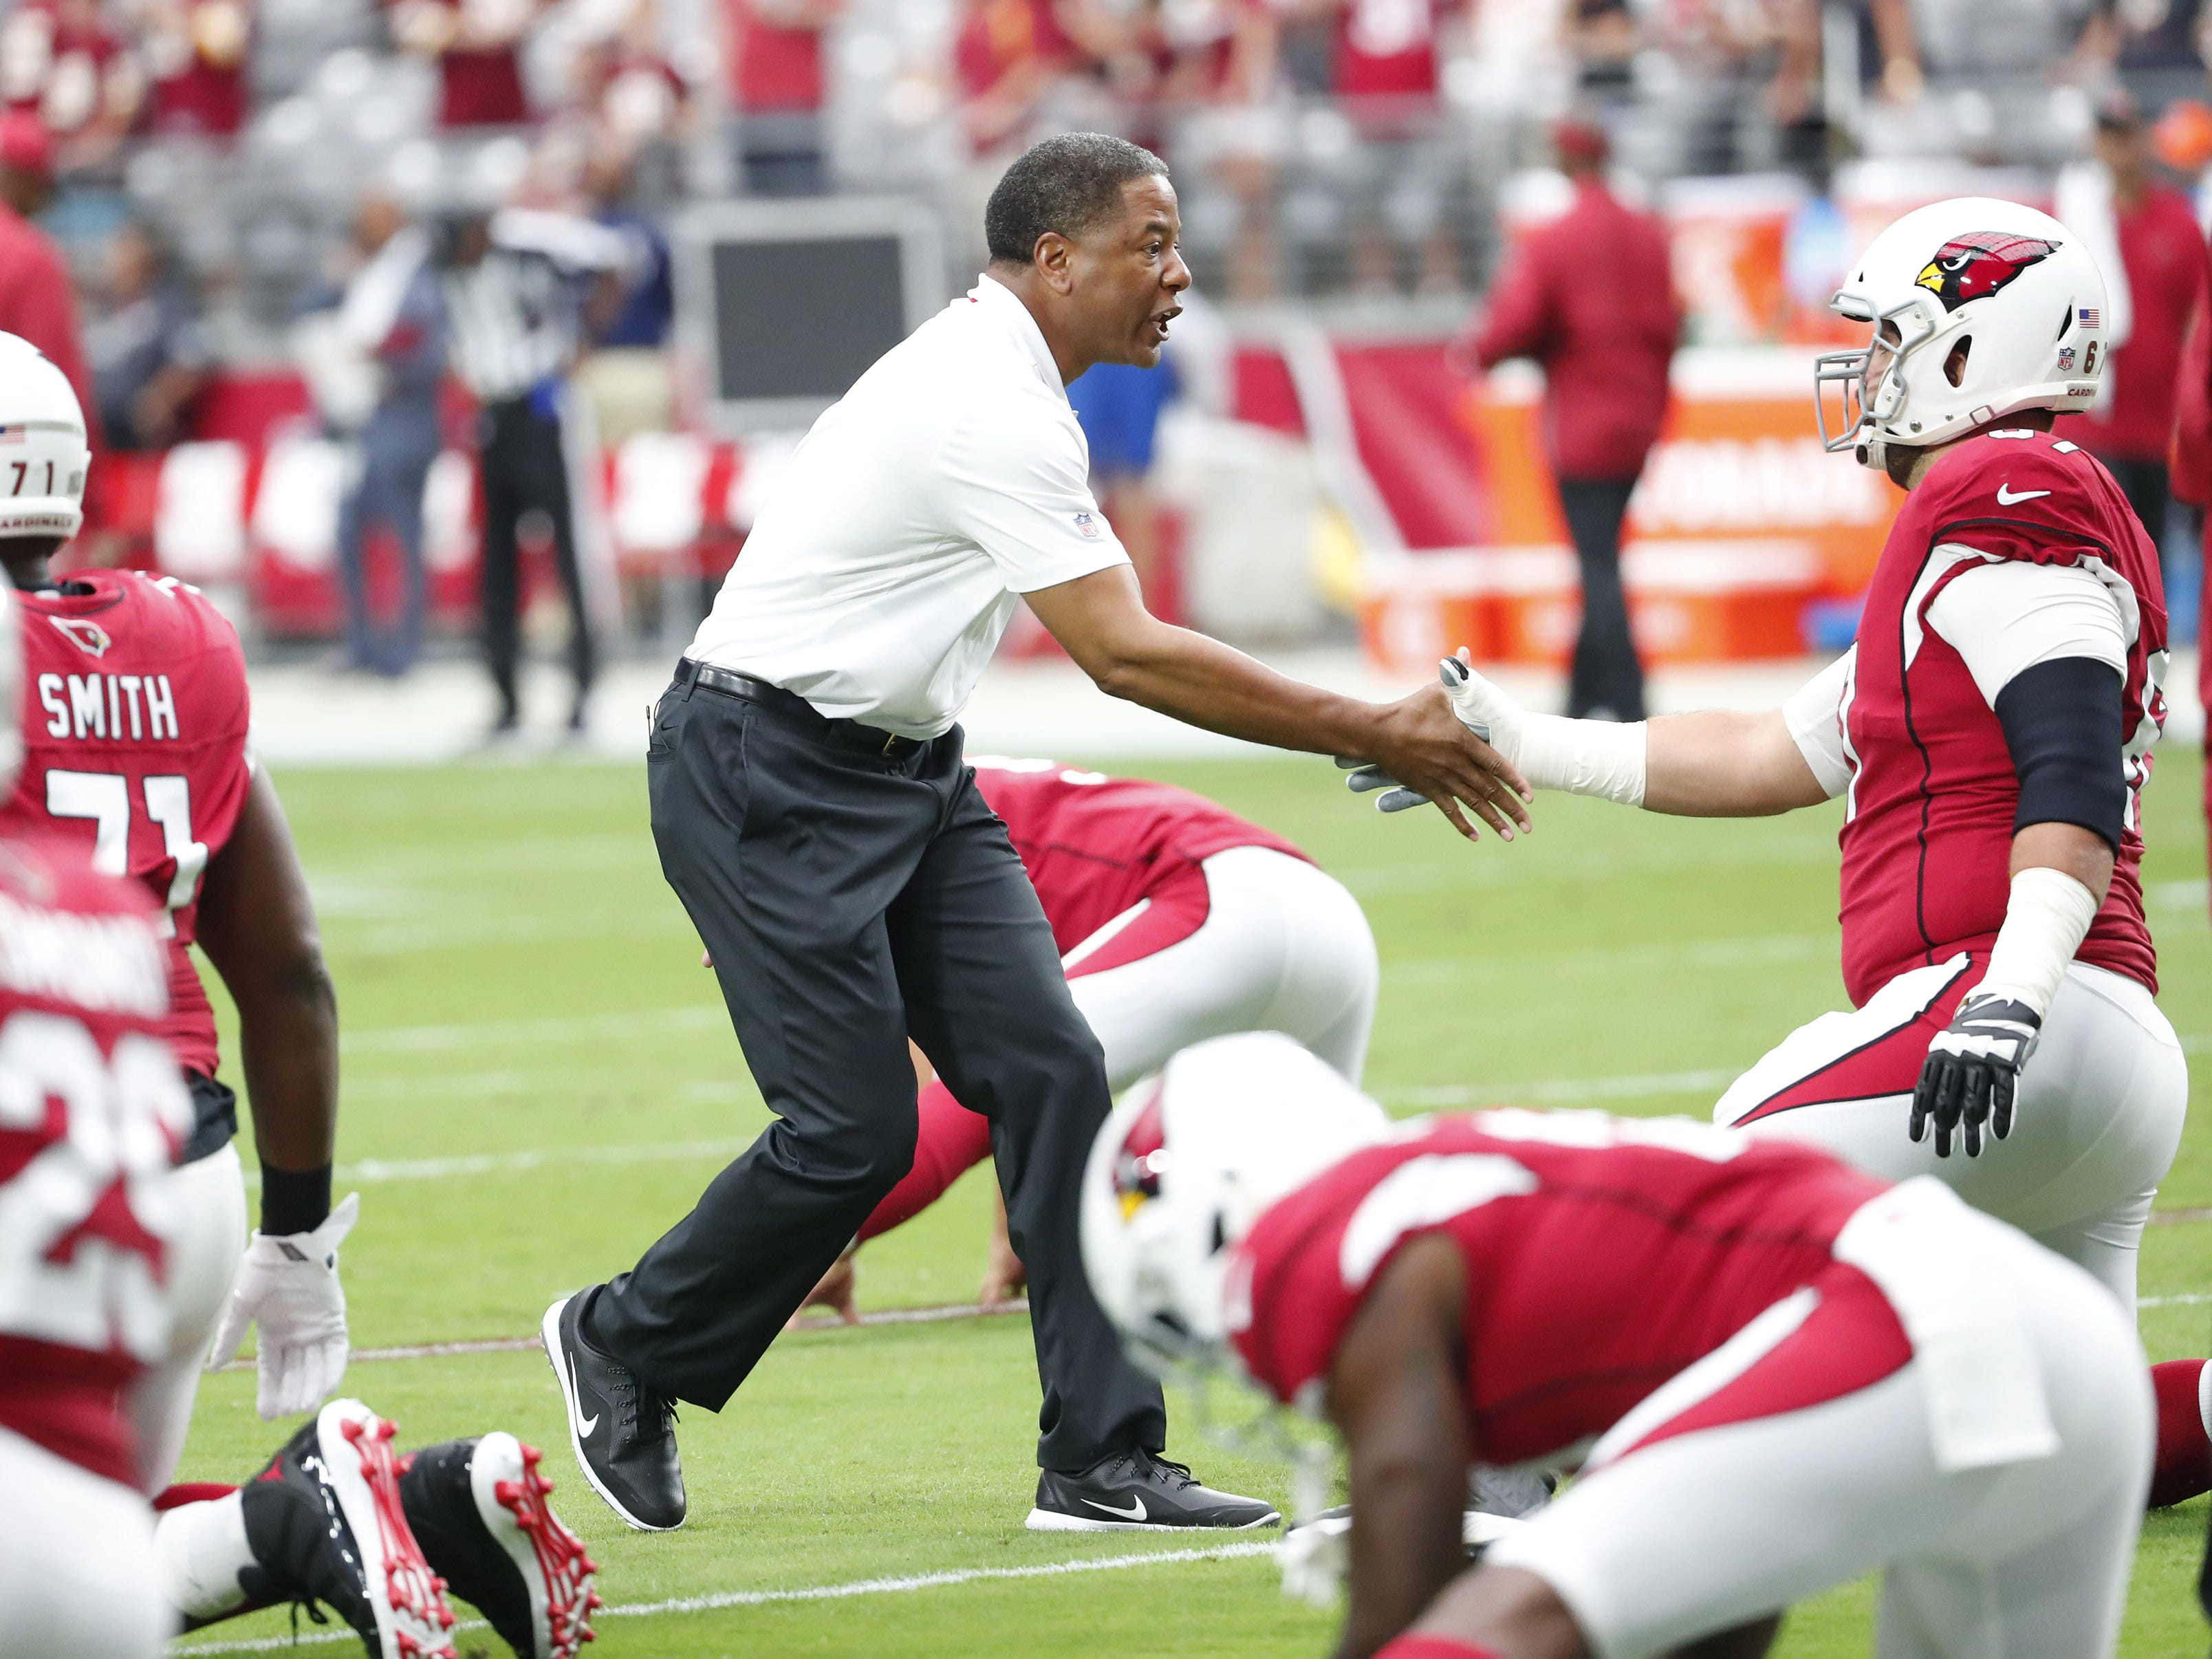 Arizona Cardinals head coach Steve Wilks shakes hands with offensive guard Justin Pugh (67) before playing against the Washington Redskins at State Farm Stadium in Glendale, Ariz. September 9. 2018.